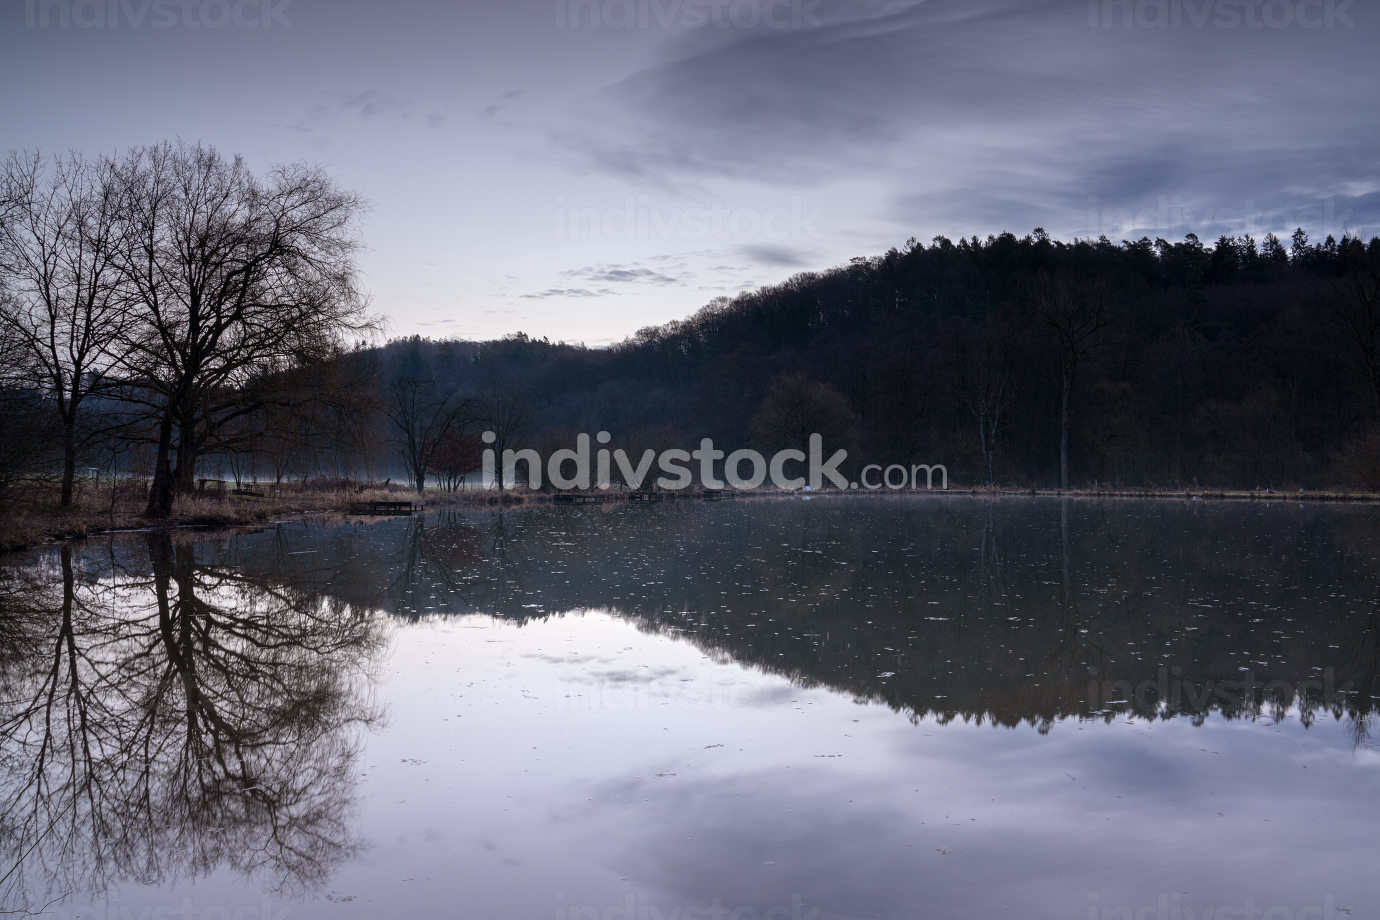 Fishpond close to Lindlar with water reflection during early morning mood, Bergisches Land, Germany